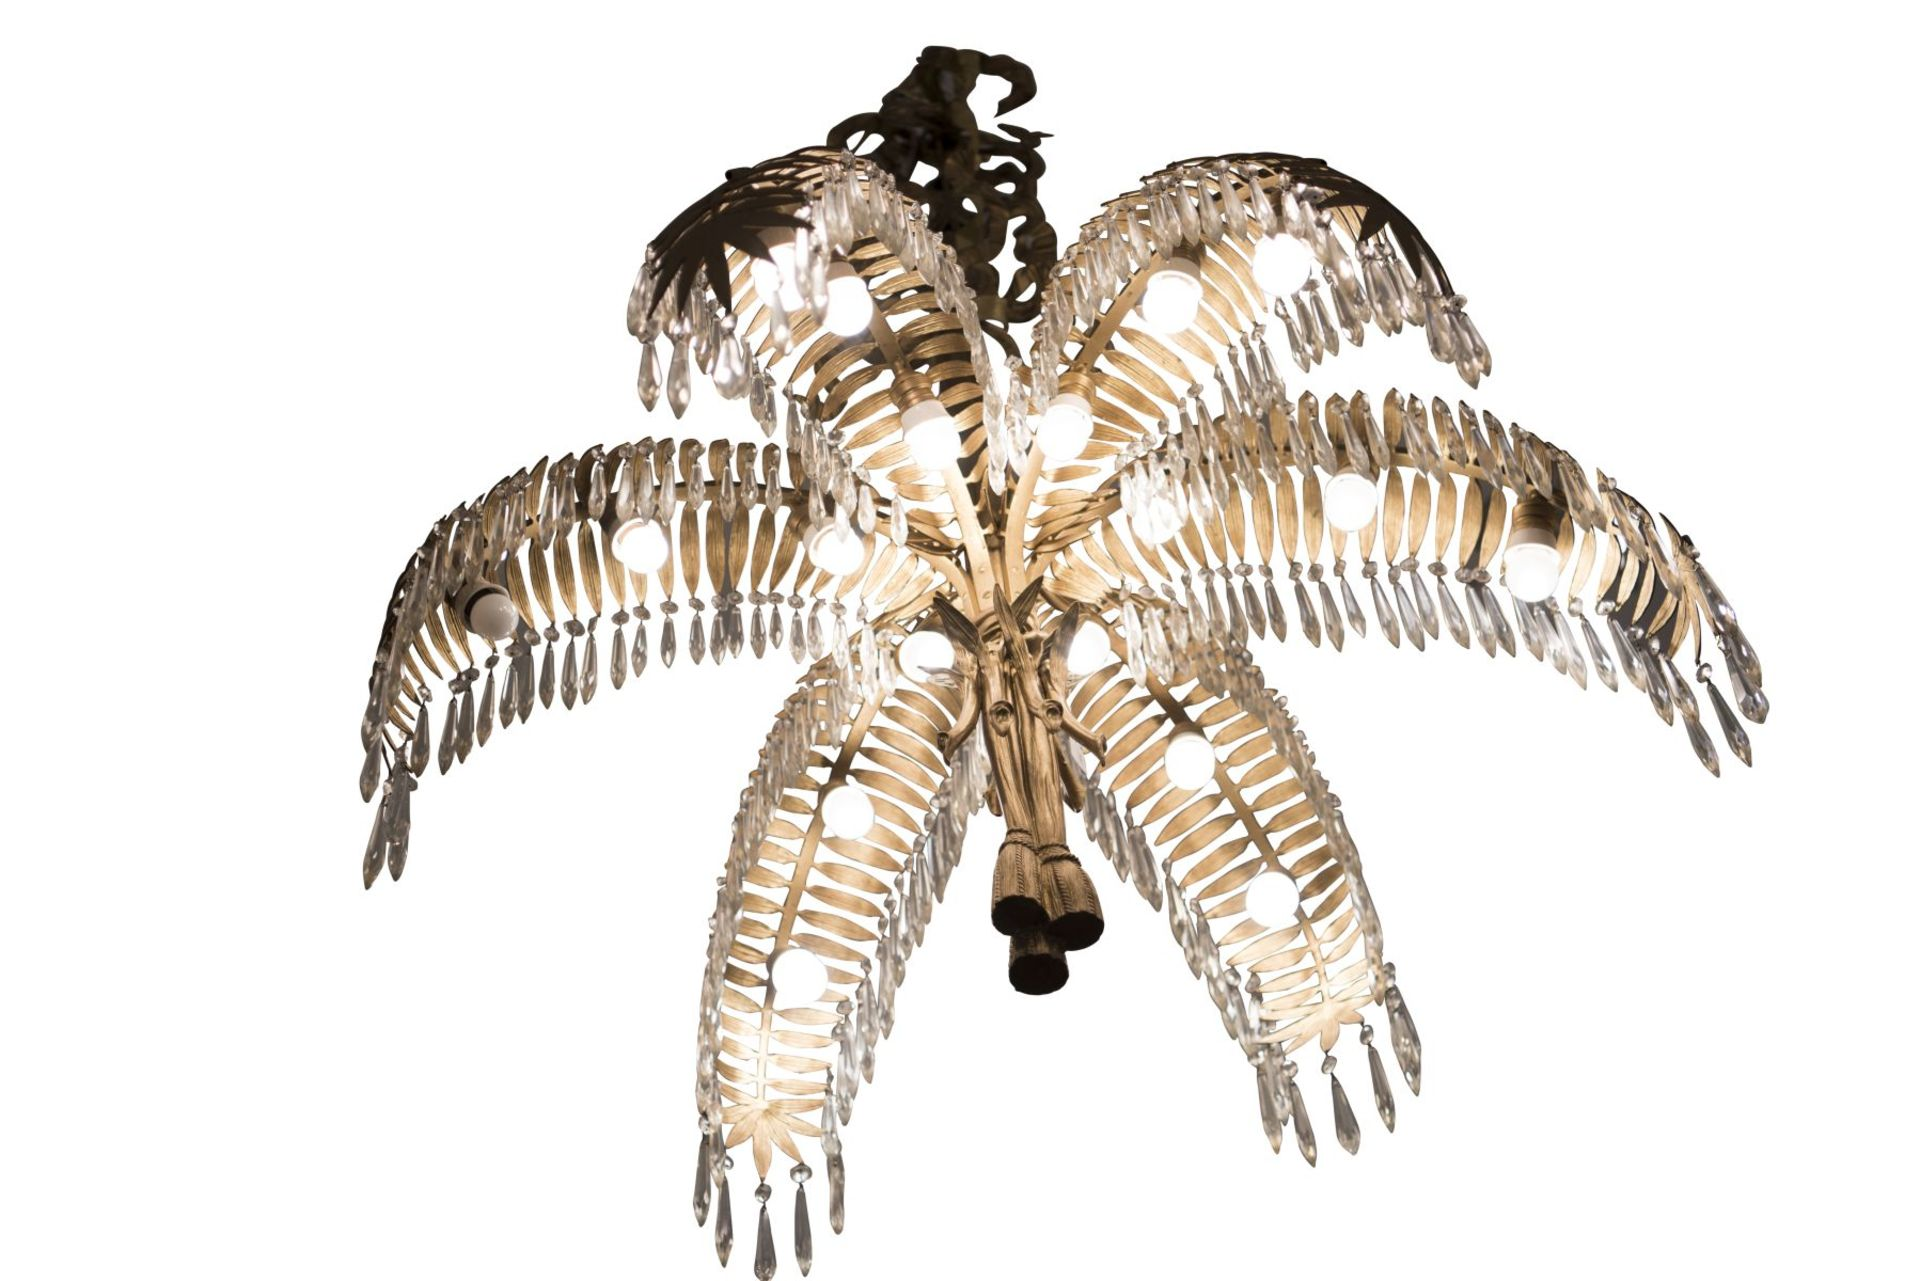 Salon Chandelier, Palm Chandelier by Hoffman for Bakalowits & Söhne, 1970s - Image 4 of 6